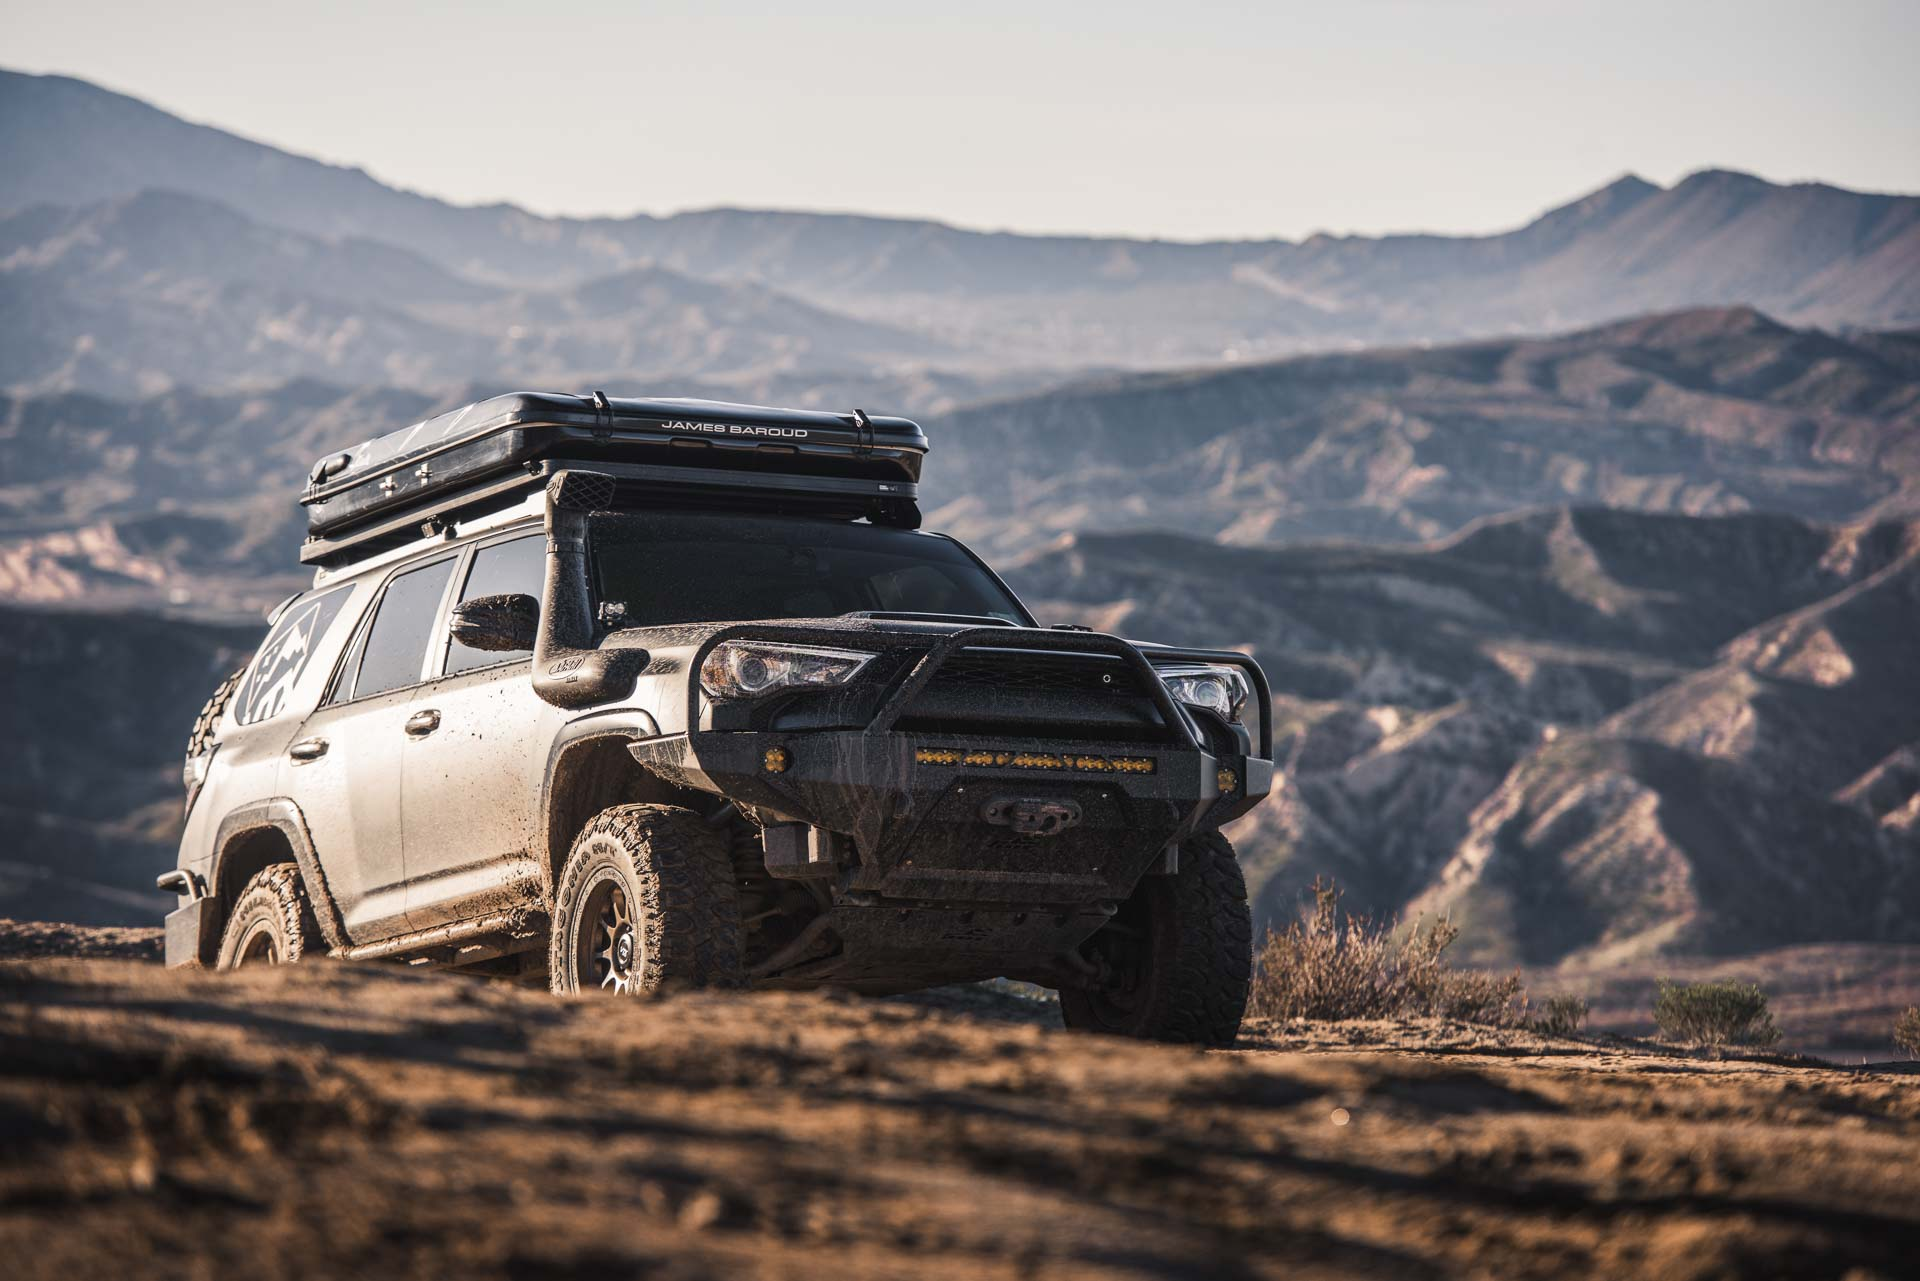 Toyota 4Runner with Milestar Patagonia MTs 4 wheeling it